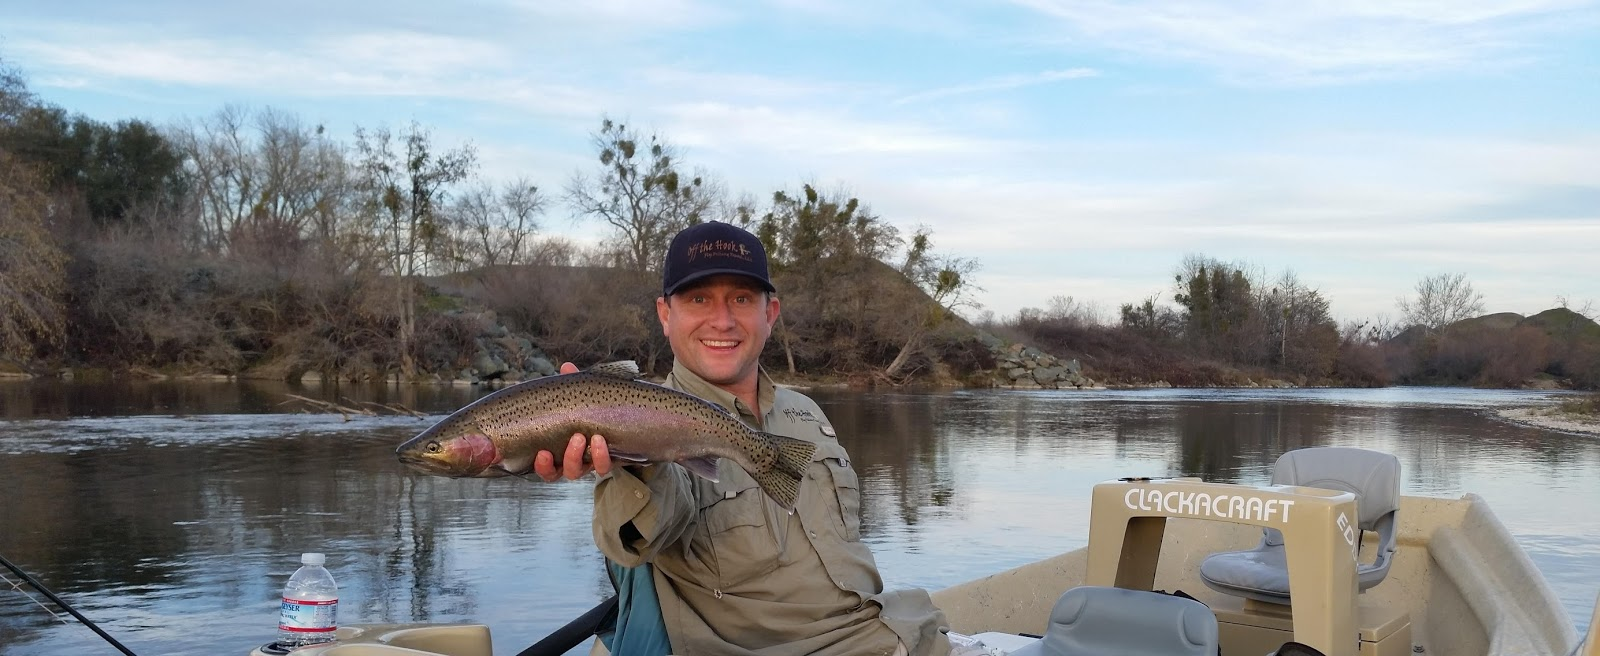 Fly fishing specialties for Fly fishing specialties